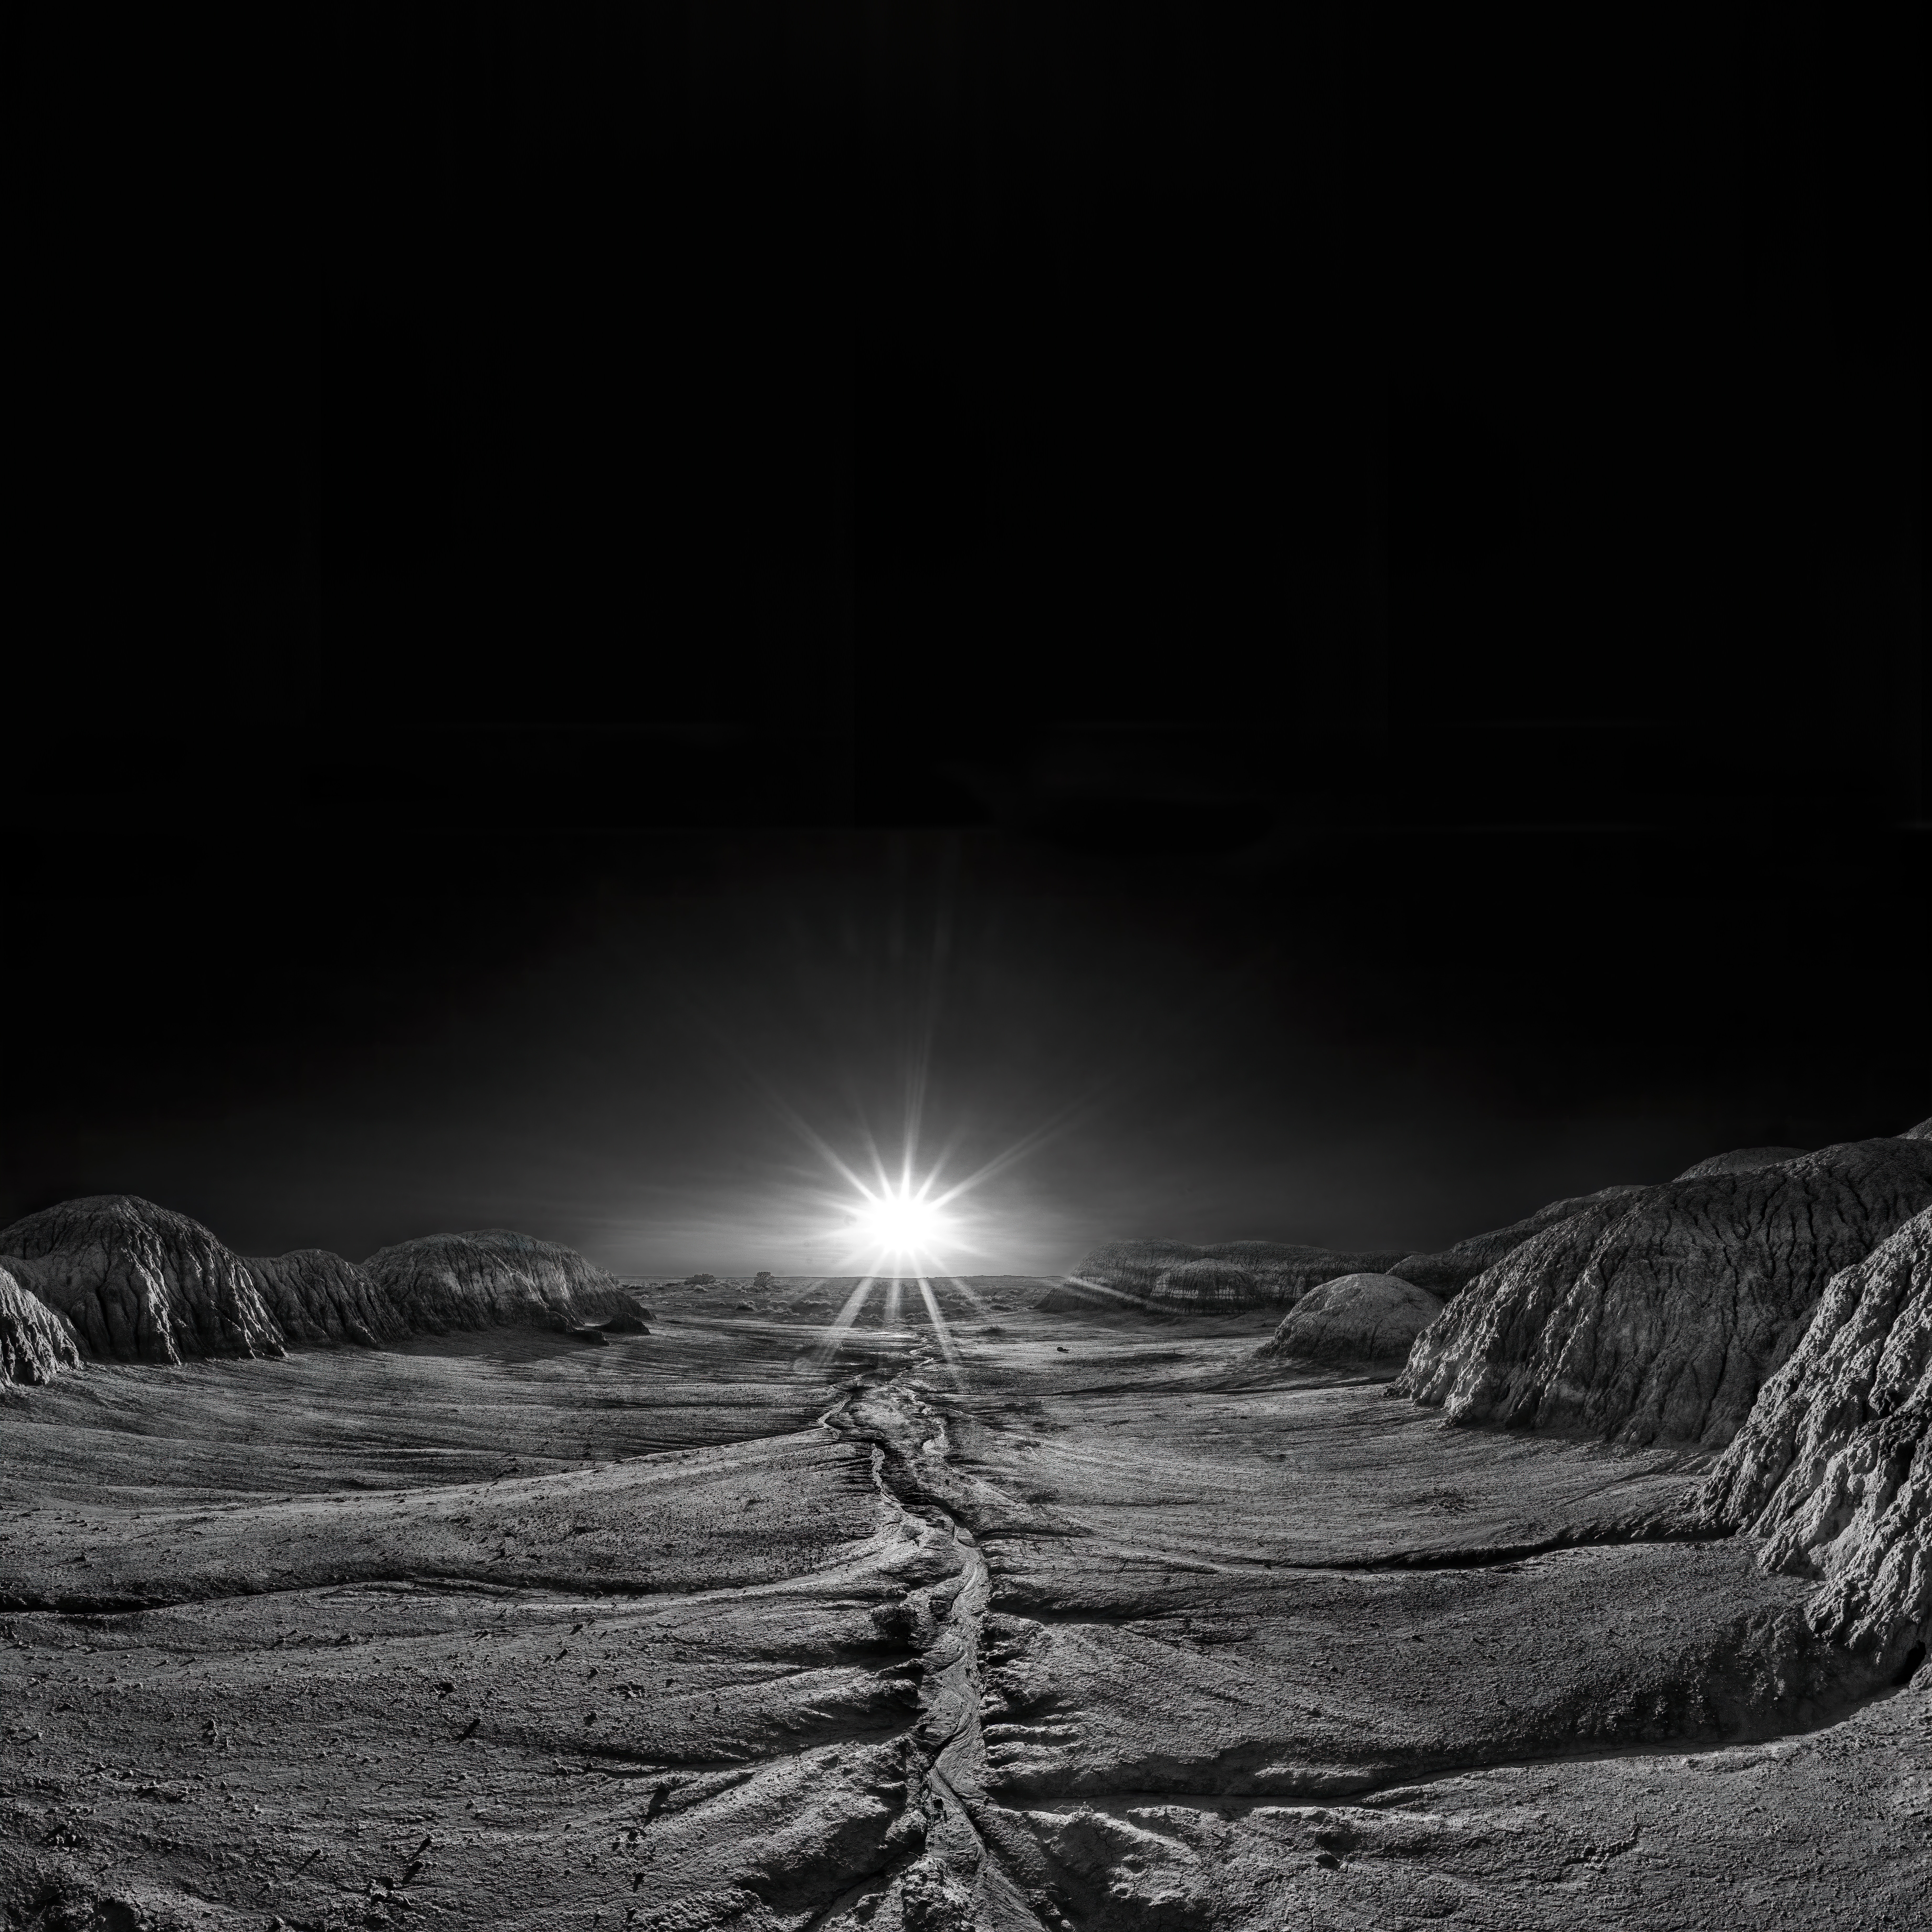 146886 Screensavers and Wallpapers Beams for phone. Download Landscape, Shining, Dawn, Beams, Rays, Flash, Stone, Bw, Chb, Deserted pictures for free